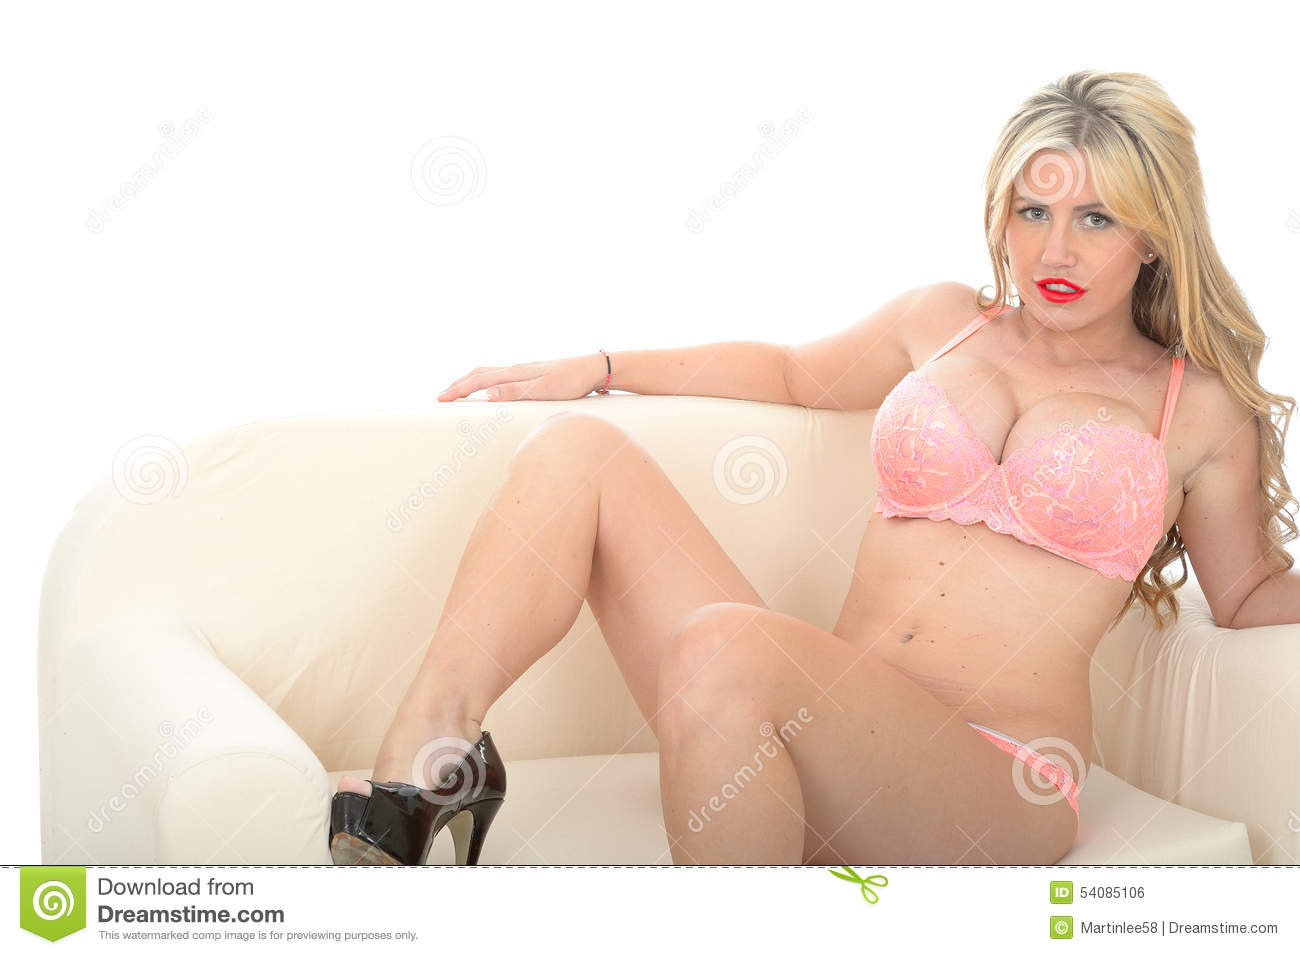 Sexy Jong Pin Up Model Posing in Coral Lingerie Lounging op Meubilair